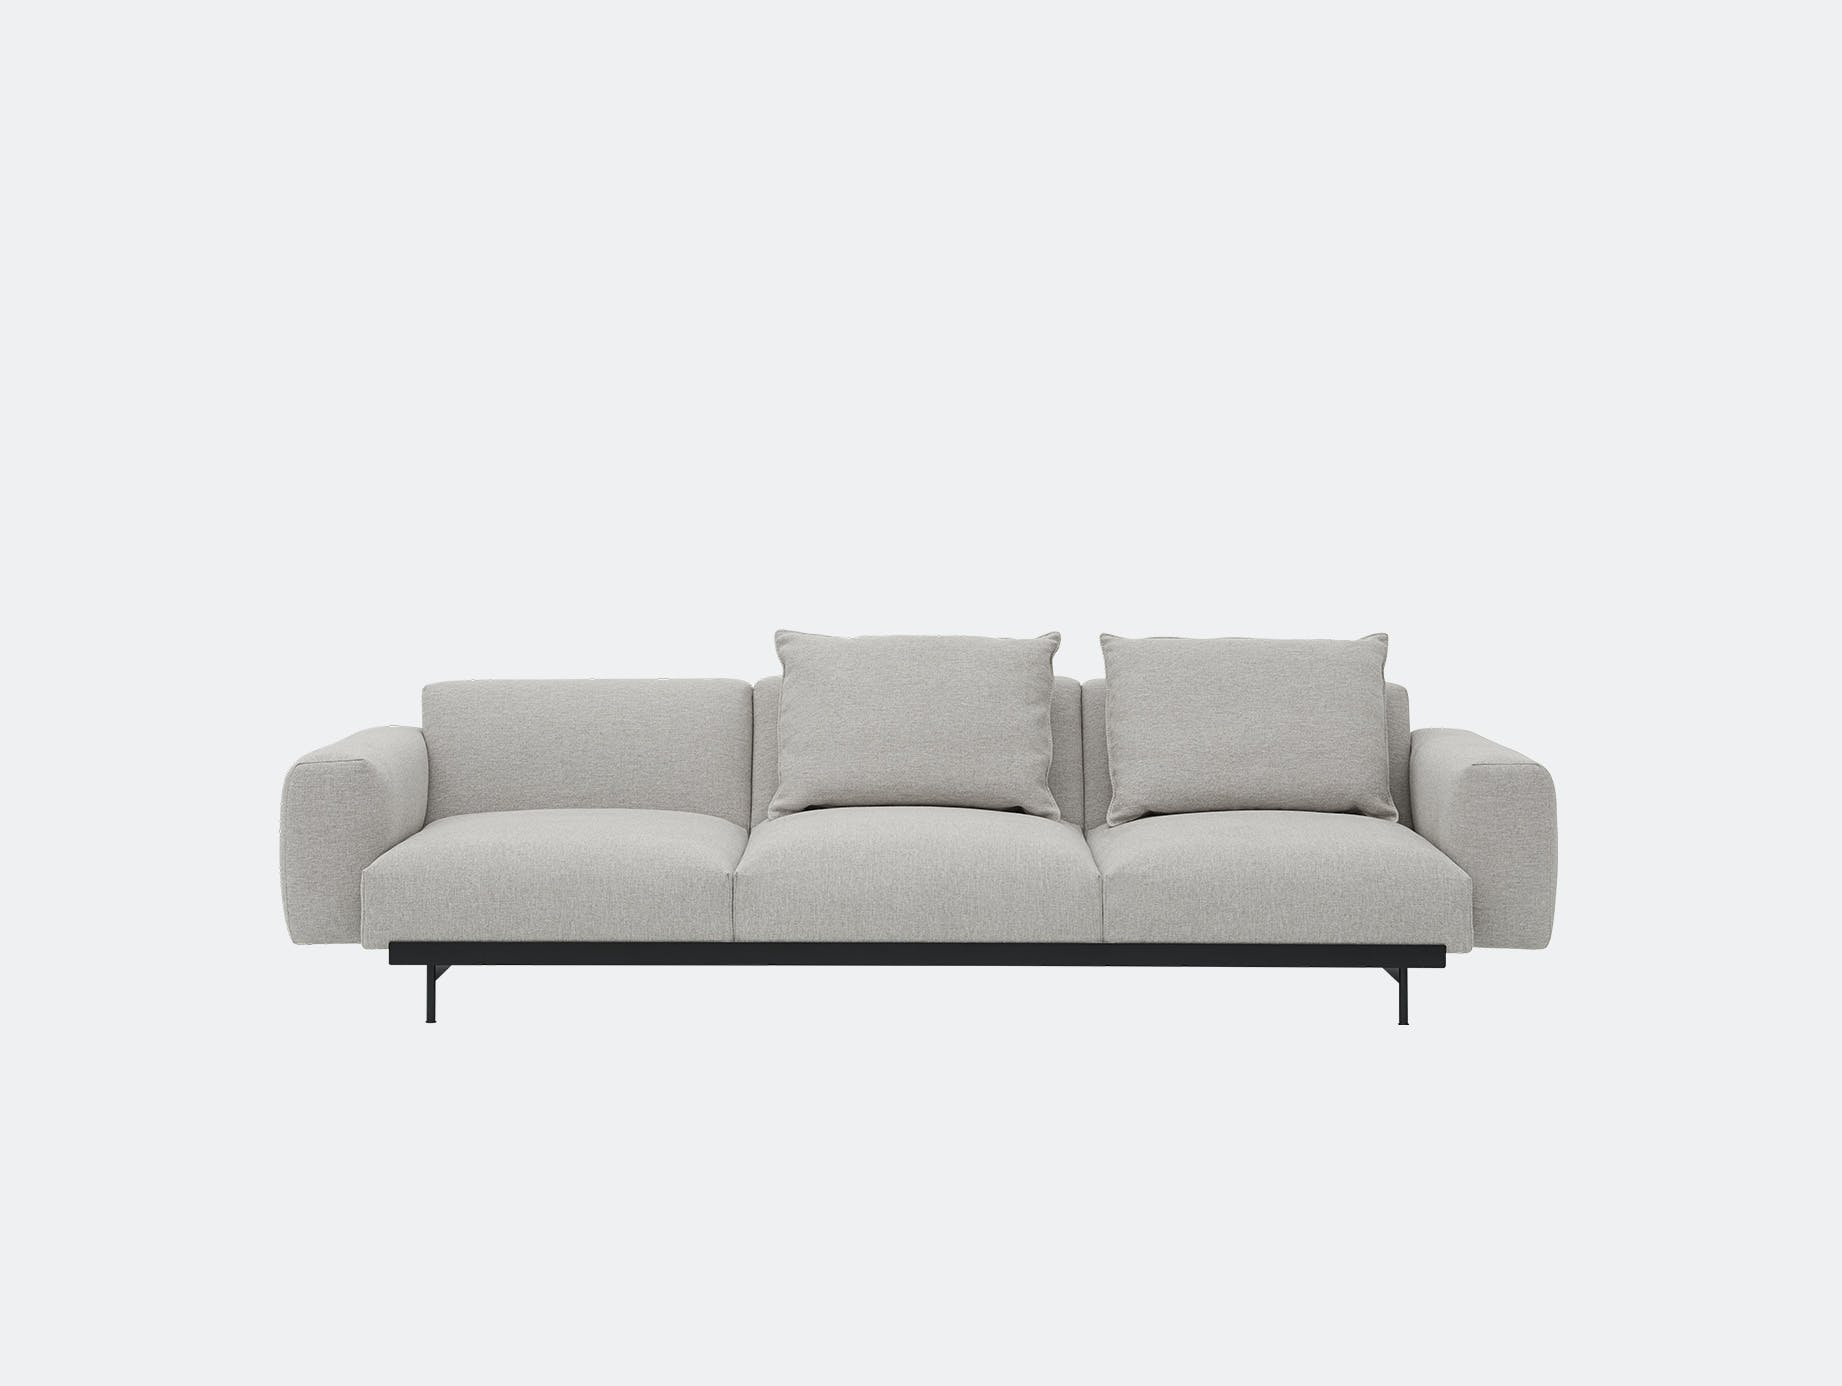 Muuto in situ 3 seater clay 12